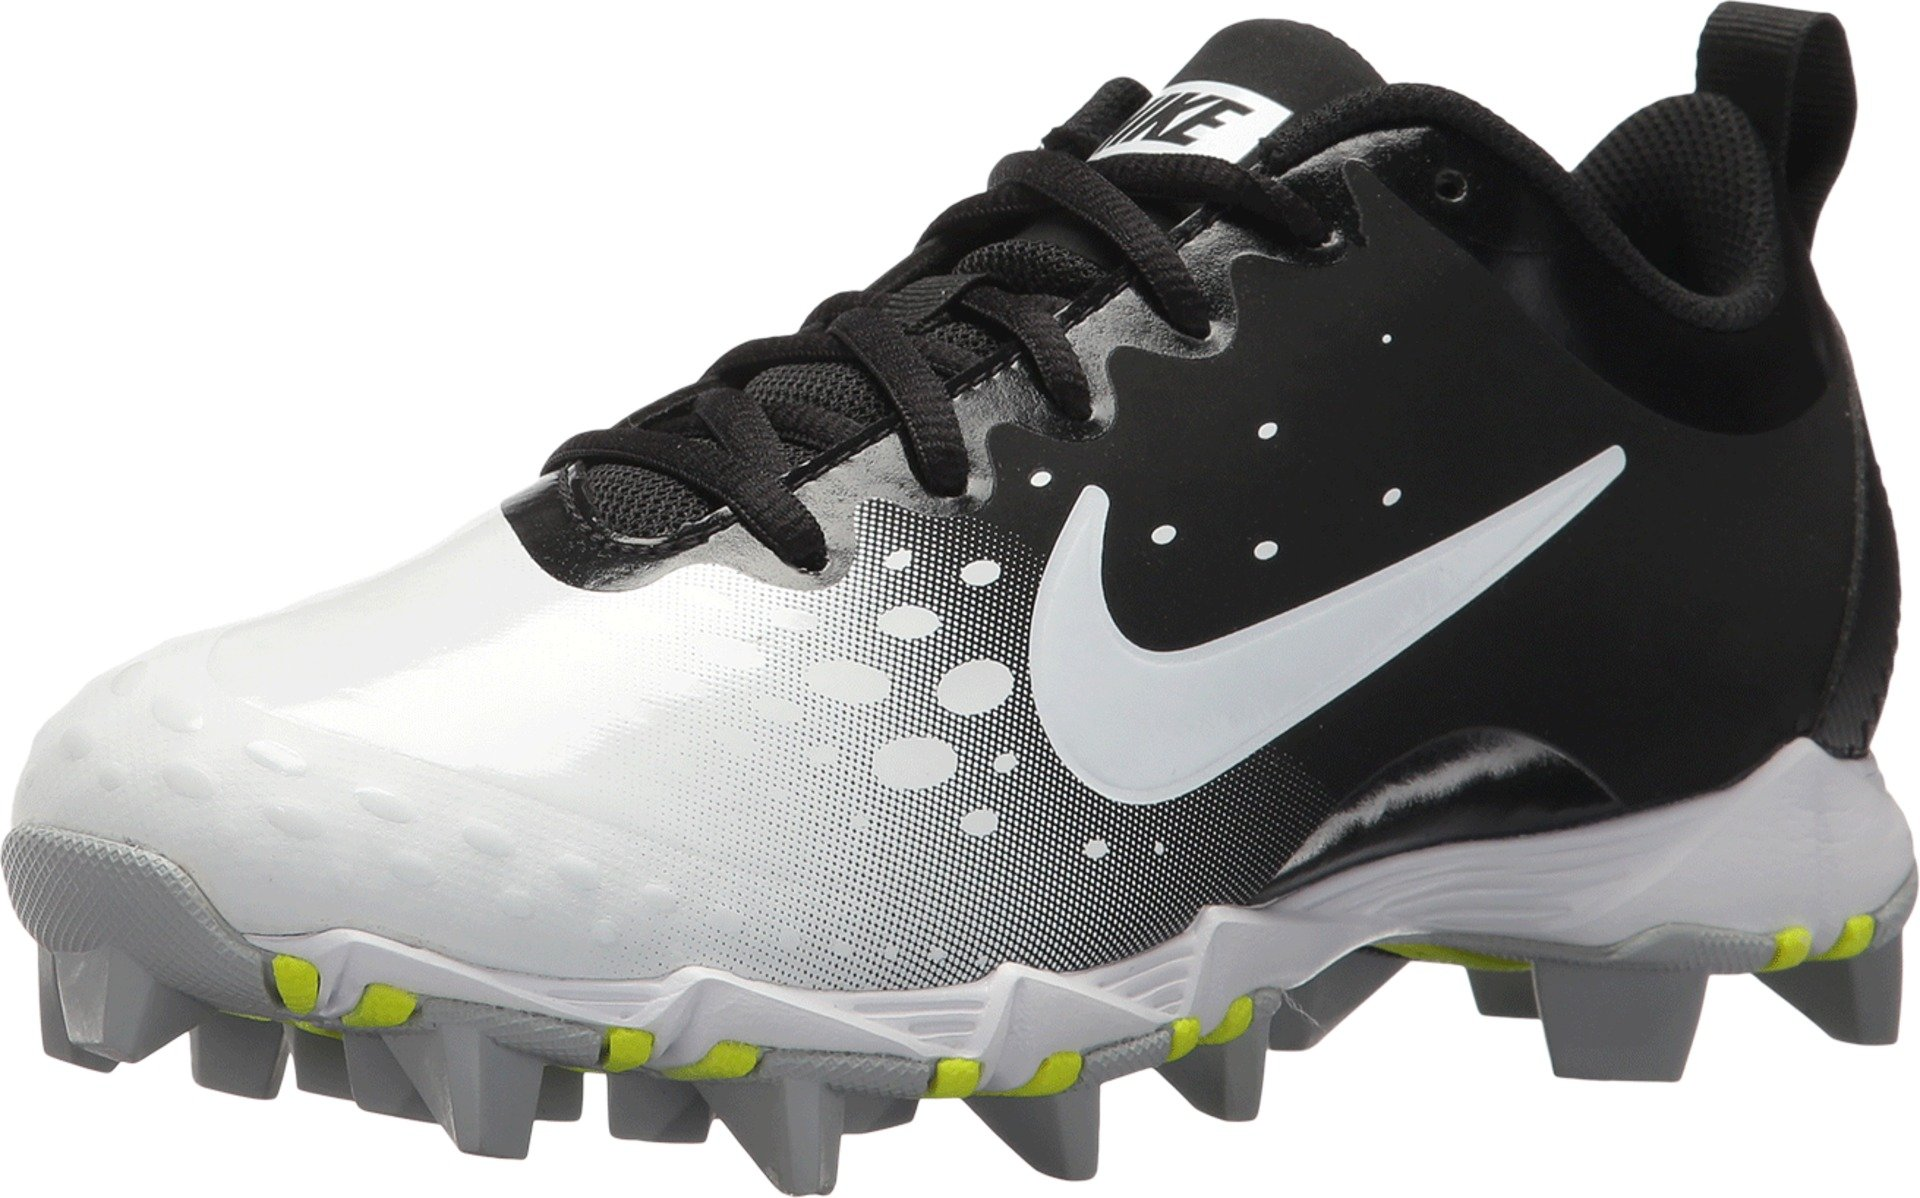 Nike Women's Hyperdiamond 2 Keystone Softball Cleat Black/White/Wolf Grey Size 7.5 M US by Nike